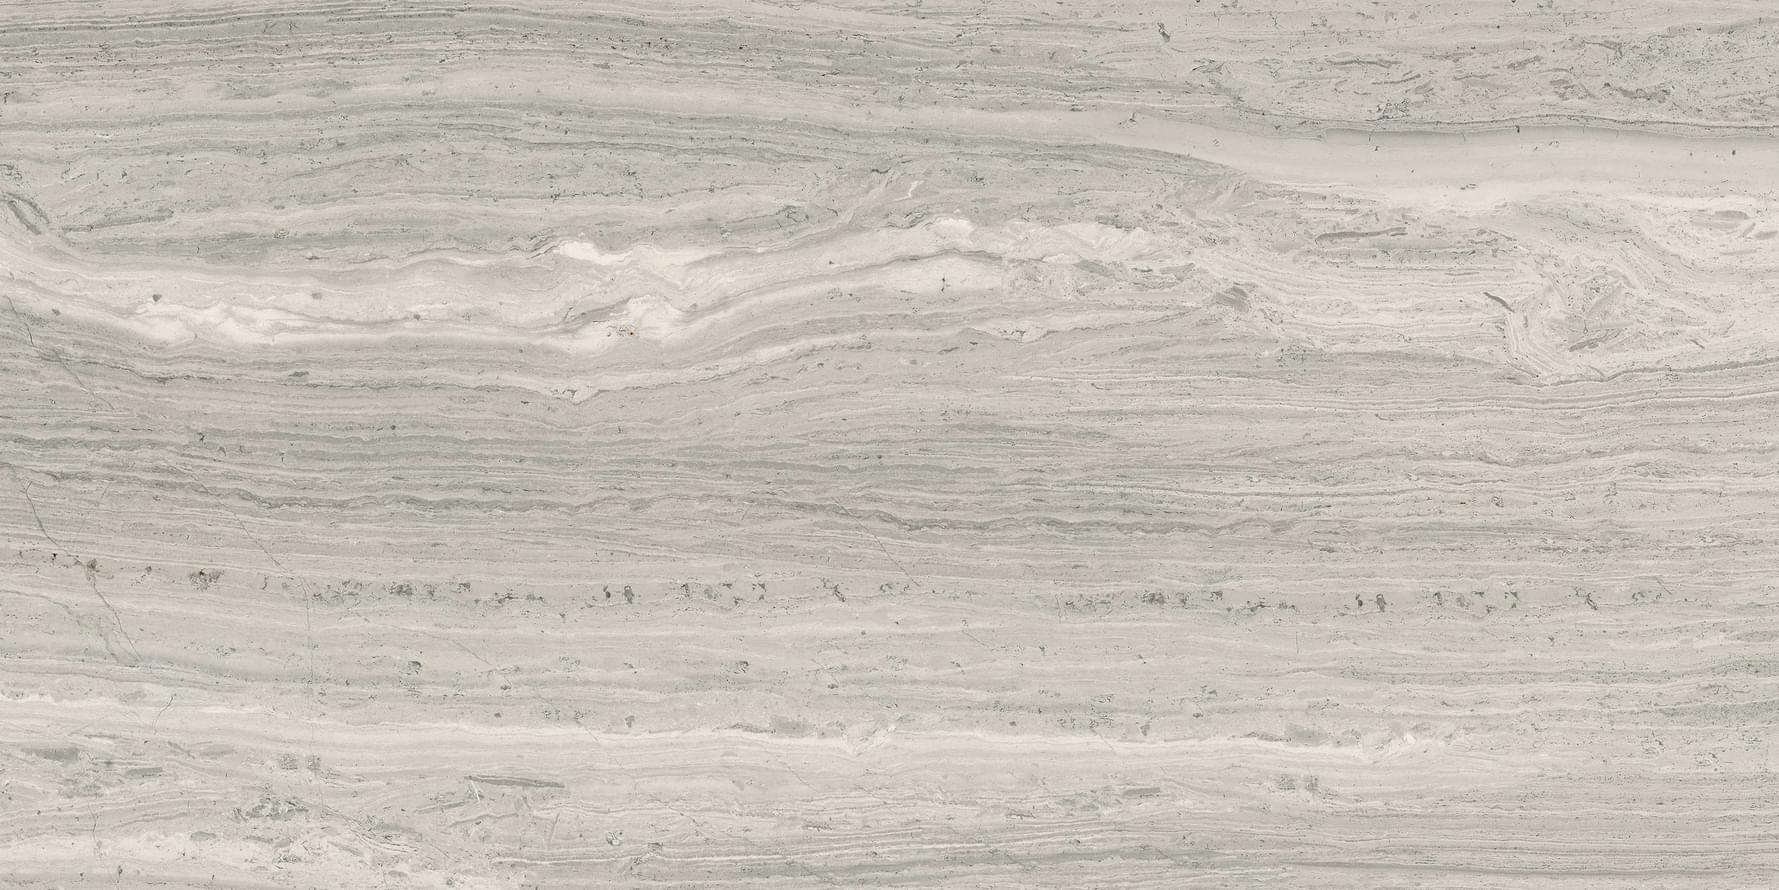 Grespania Silk Coverlam Gris Pulido 5.6 mm 60x120